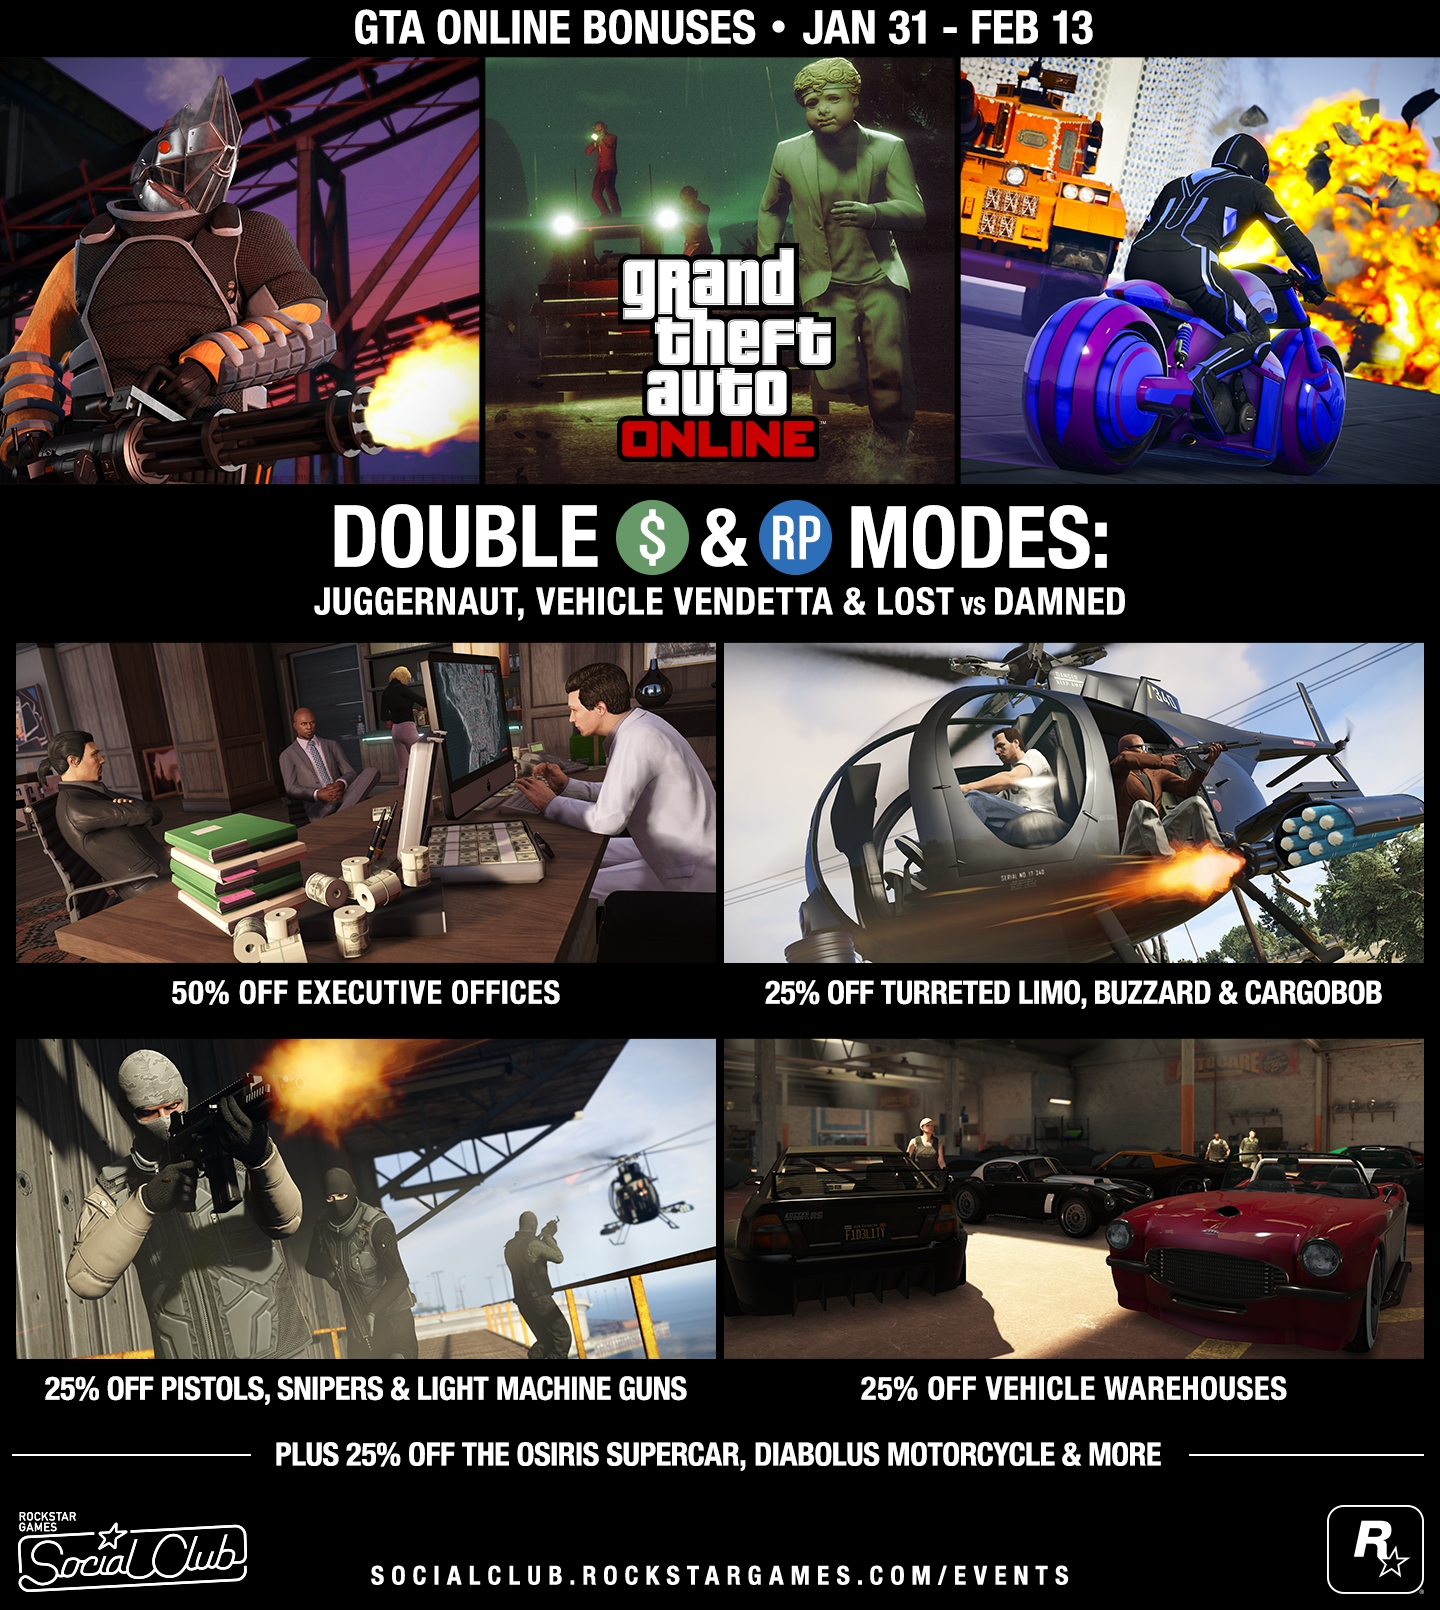 GTA Online: Double GTA$ Modes, Executive Office Sale, Last Chance to